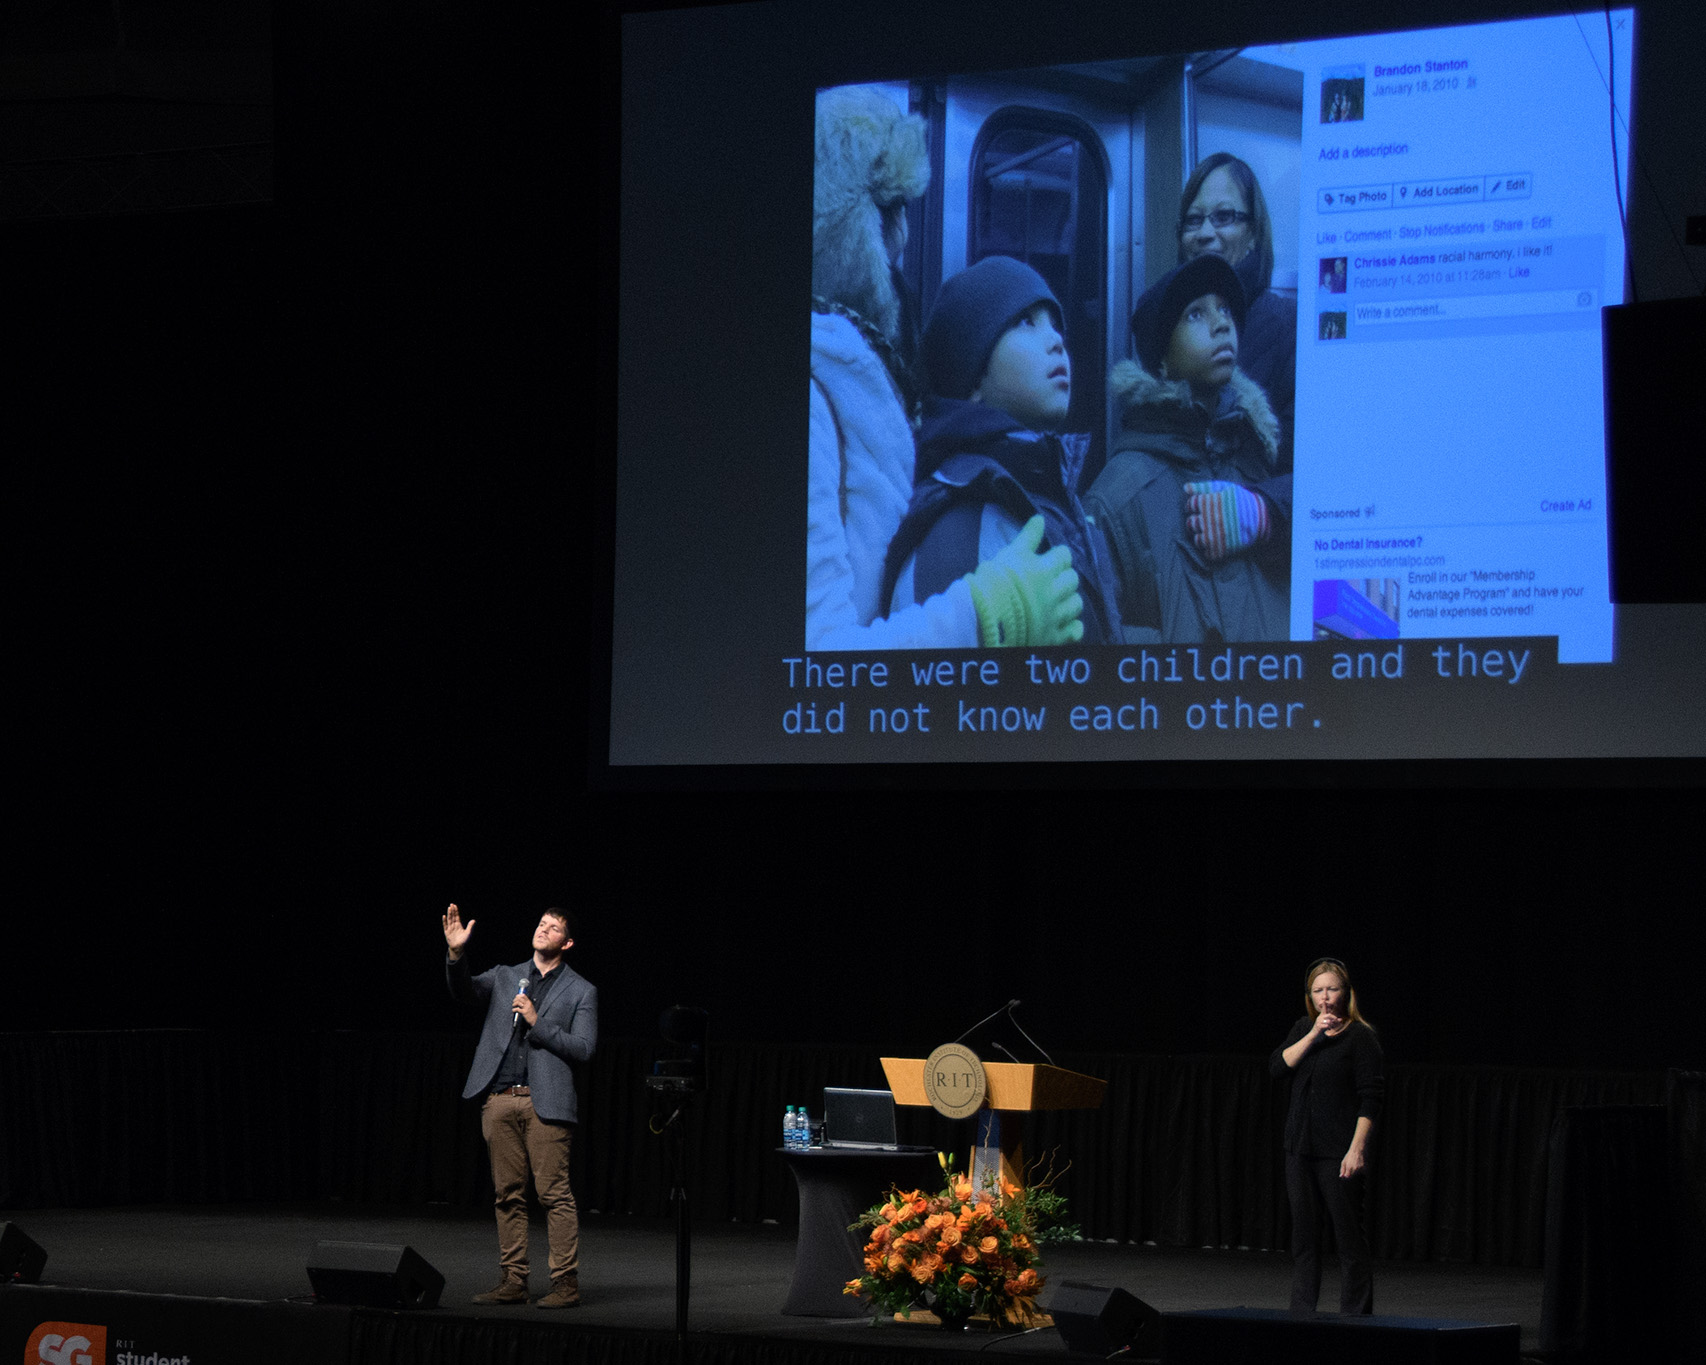 A recent talk by Brandon Stanton, founder of HONY, was inspirational!